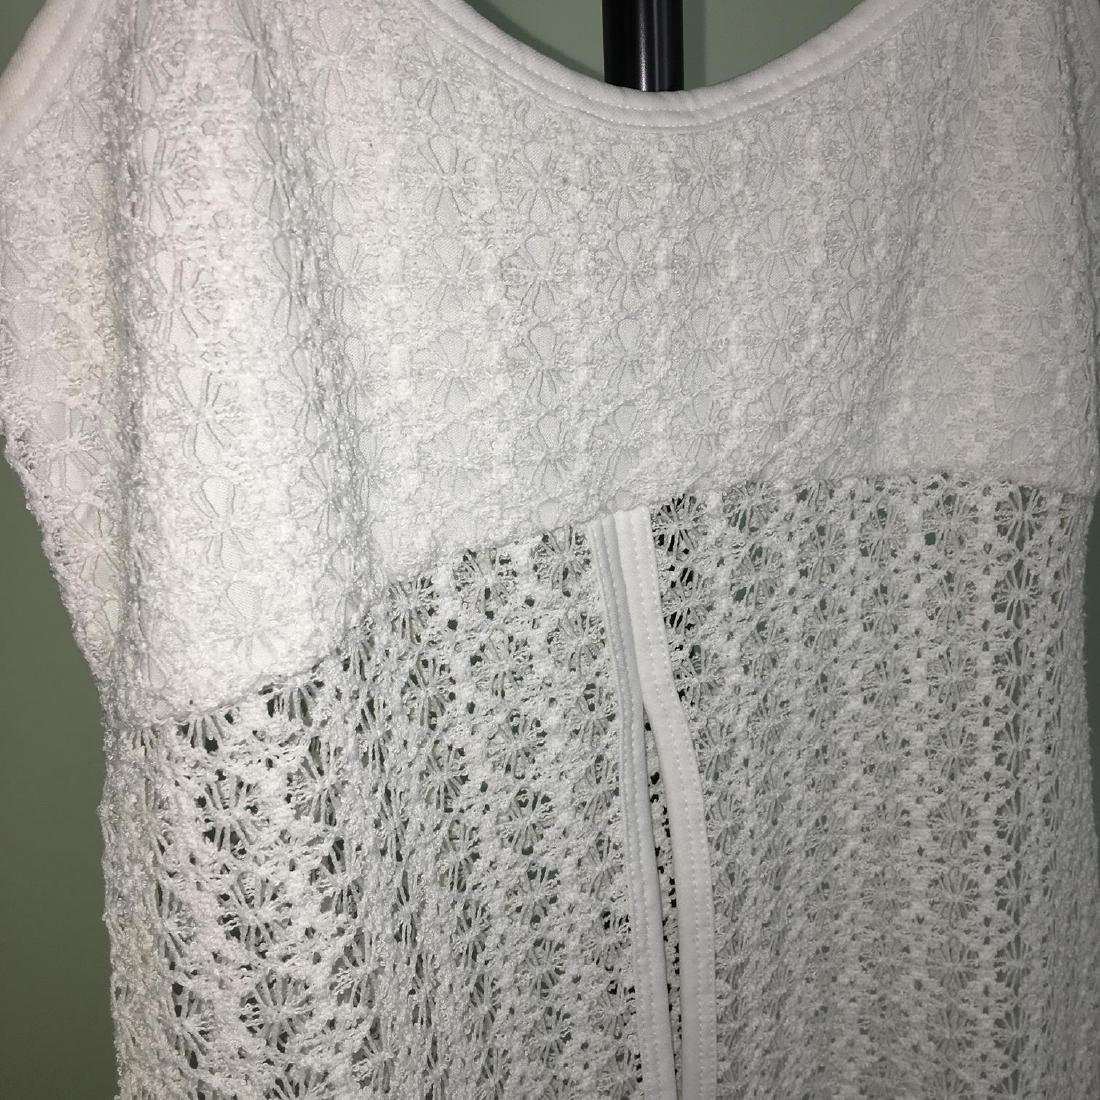 Vintage Women's White Crochet Shirt Blouse Top Size XS - 3